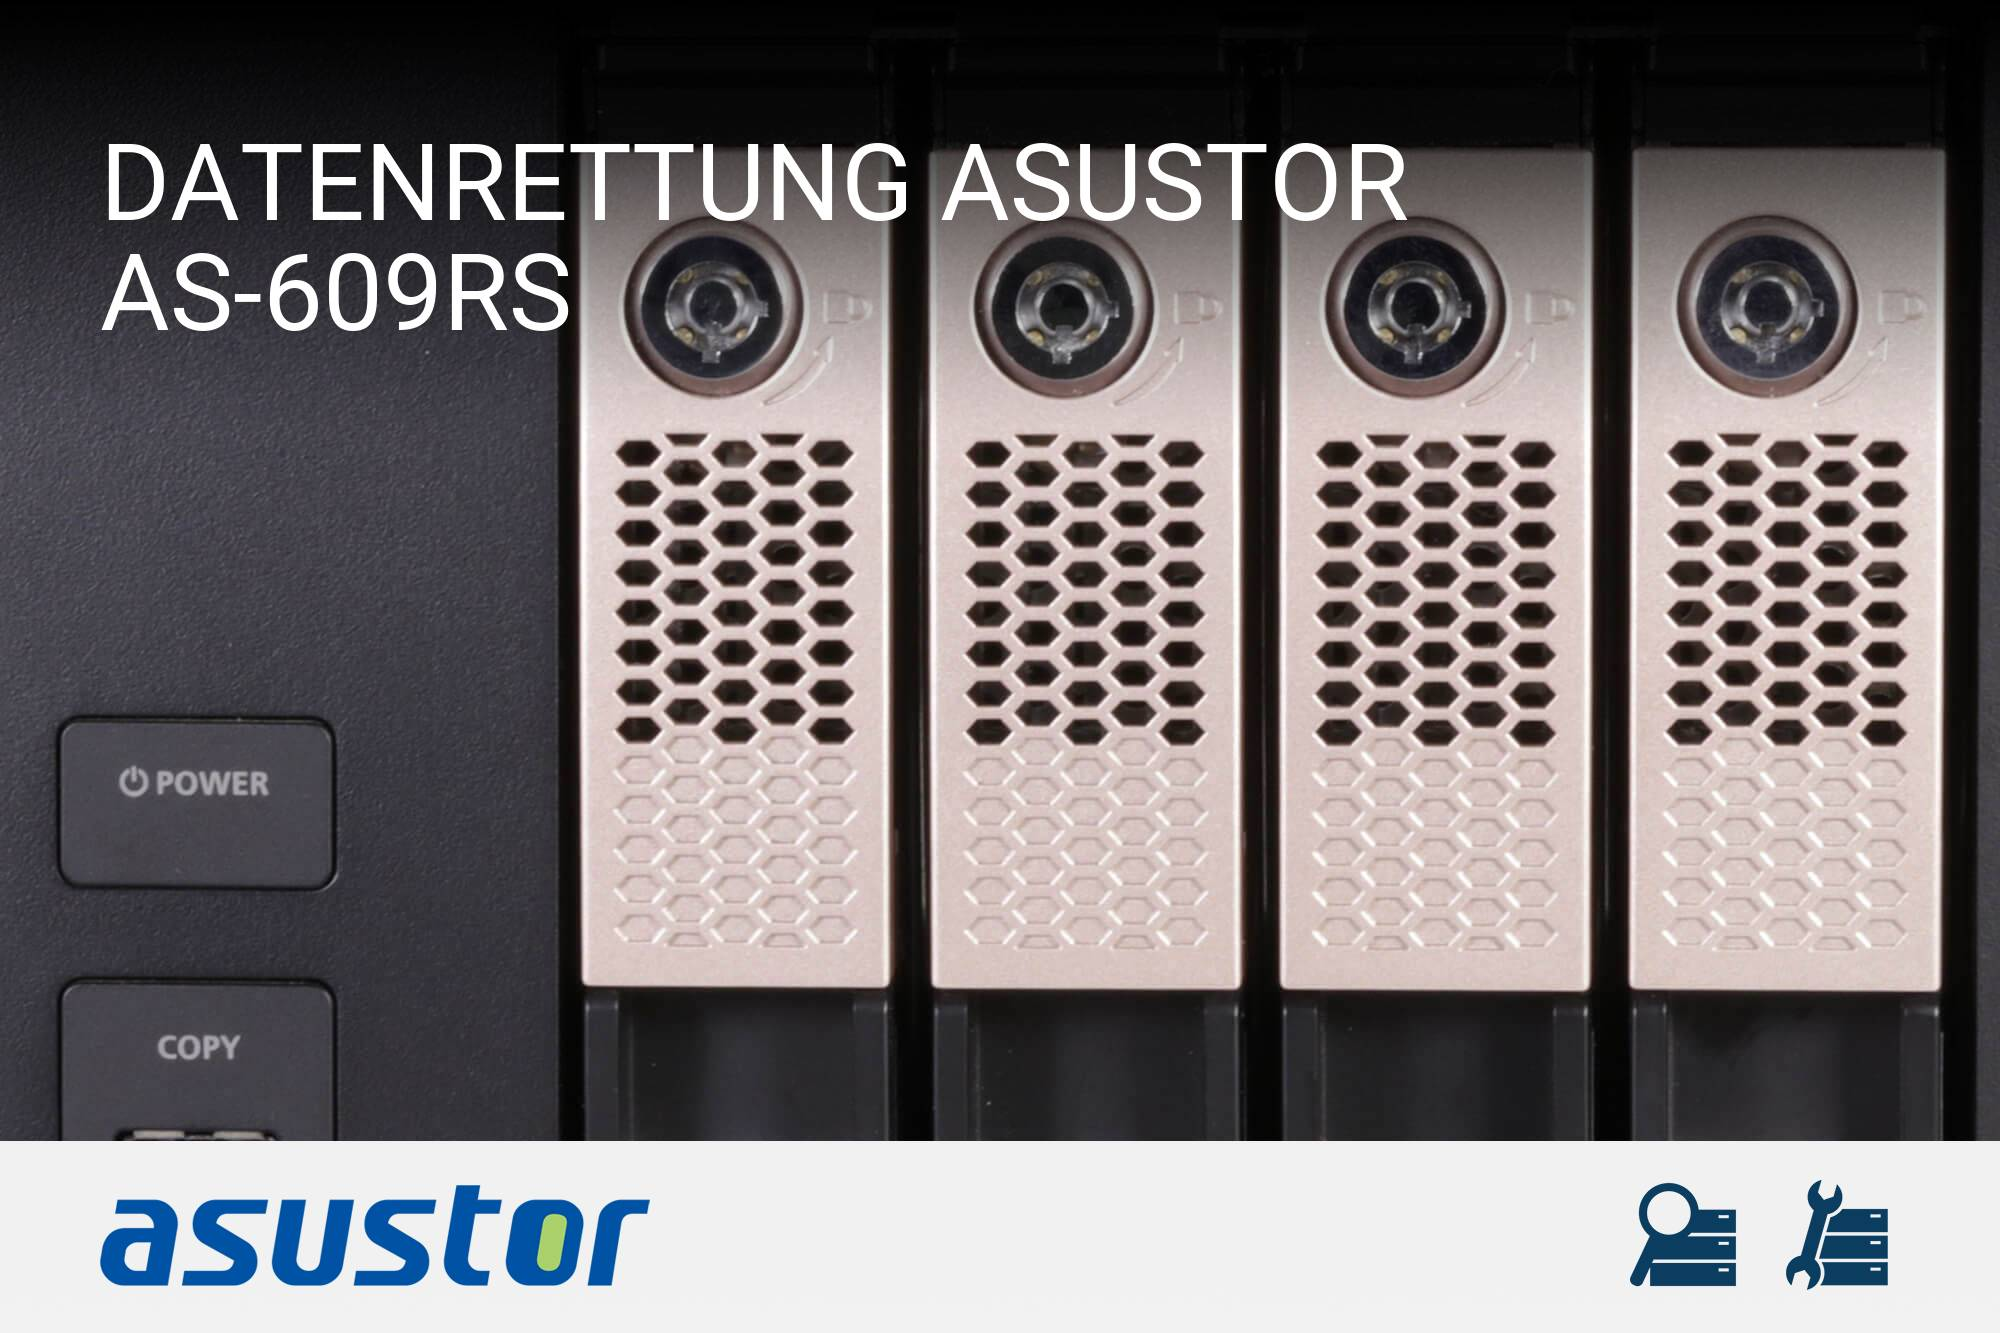 Asustor AS-609RS